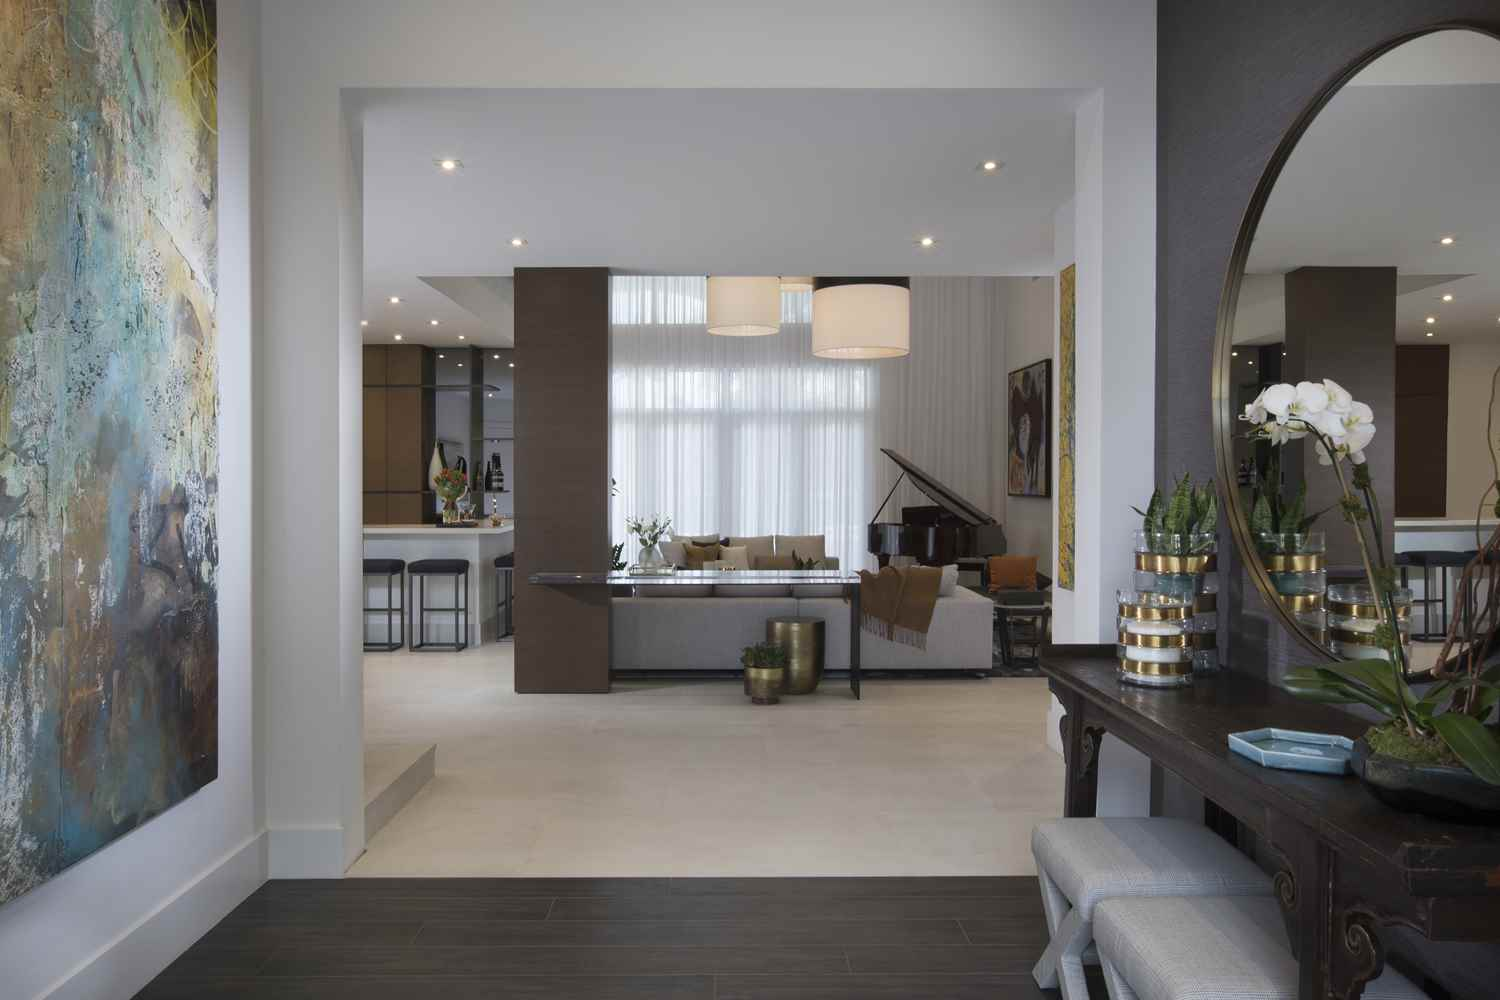 House Renovation - Residential Interior Design Project on House Interior Ideas  id=44283